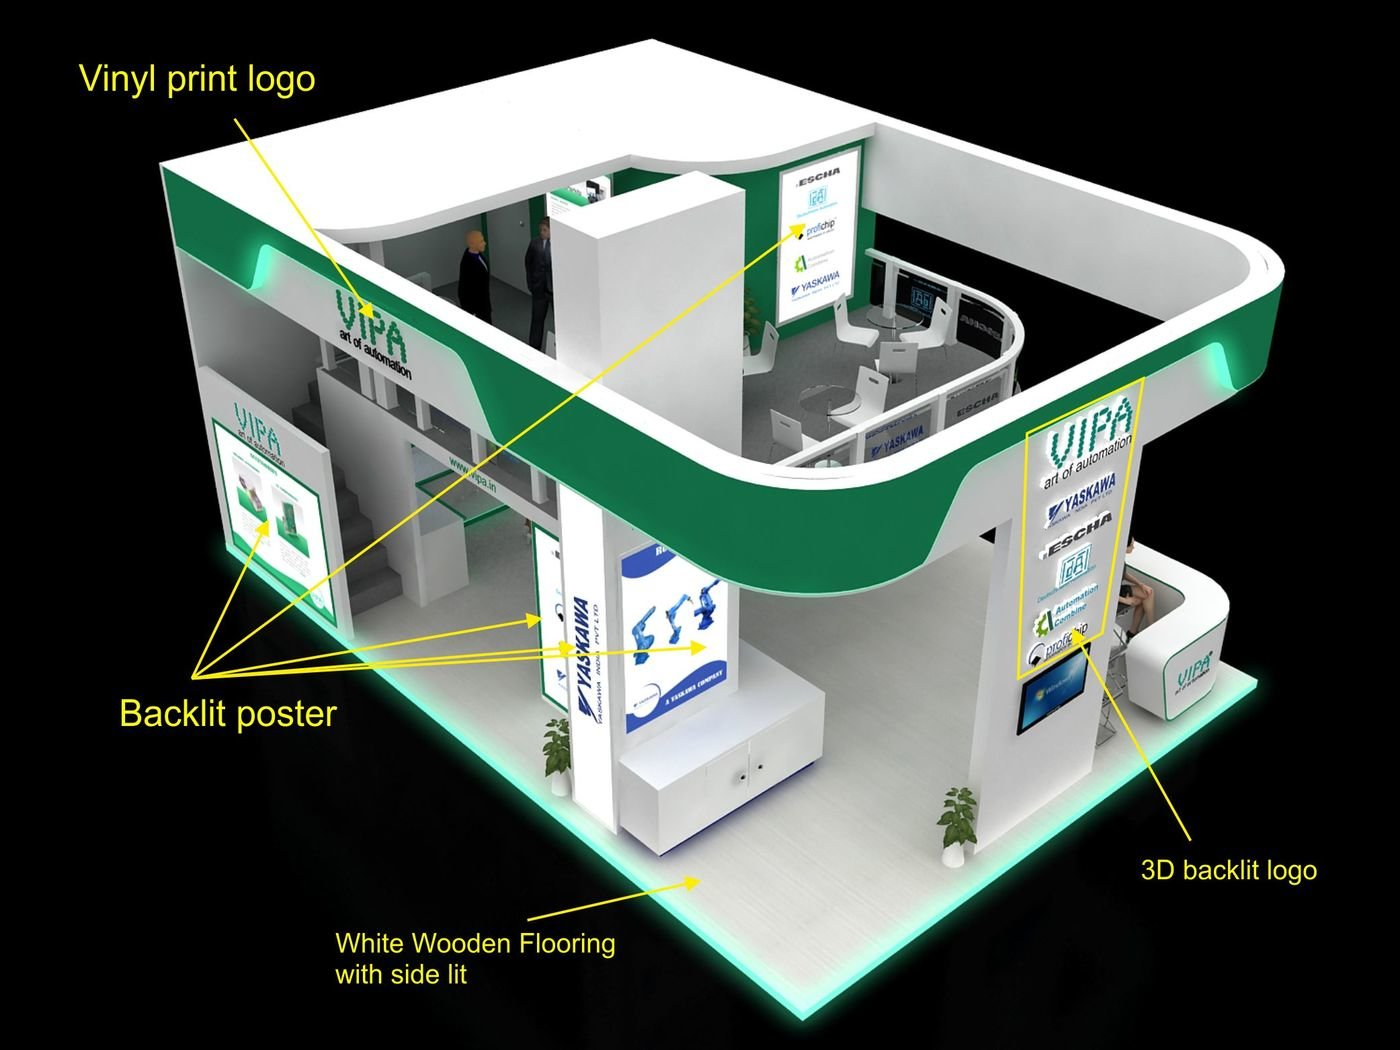 Vipa 70 sqm stall Automation 2015 exhibition sfow by Dipesh